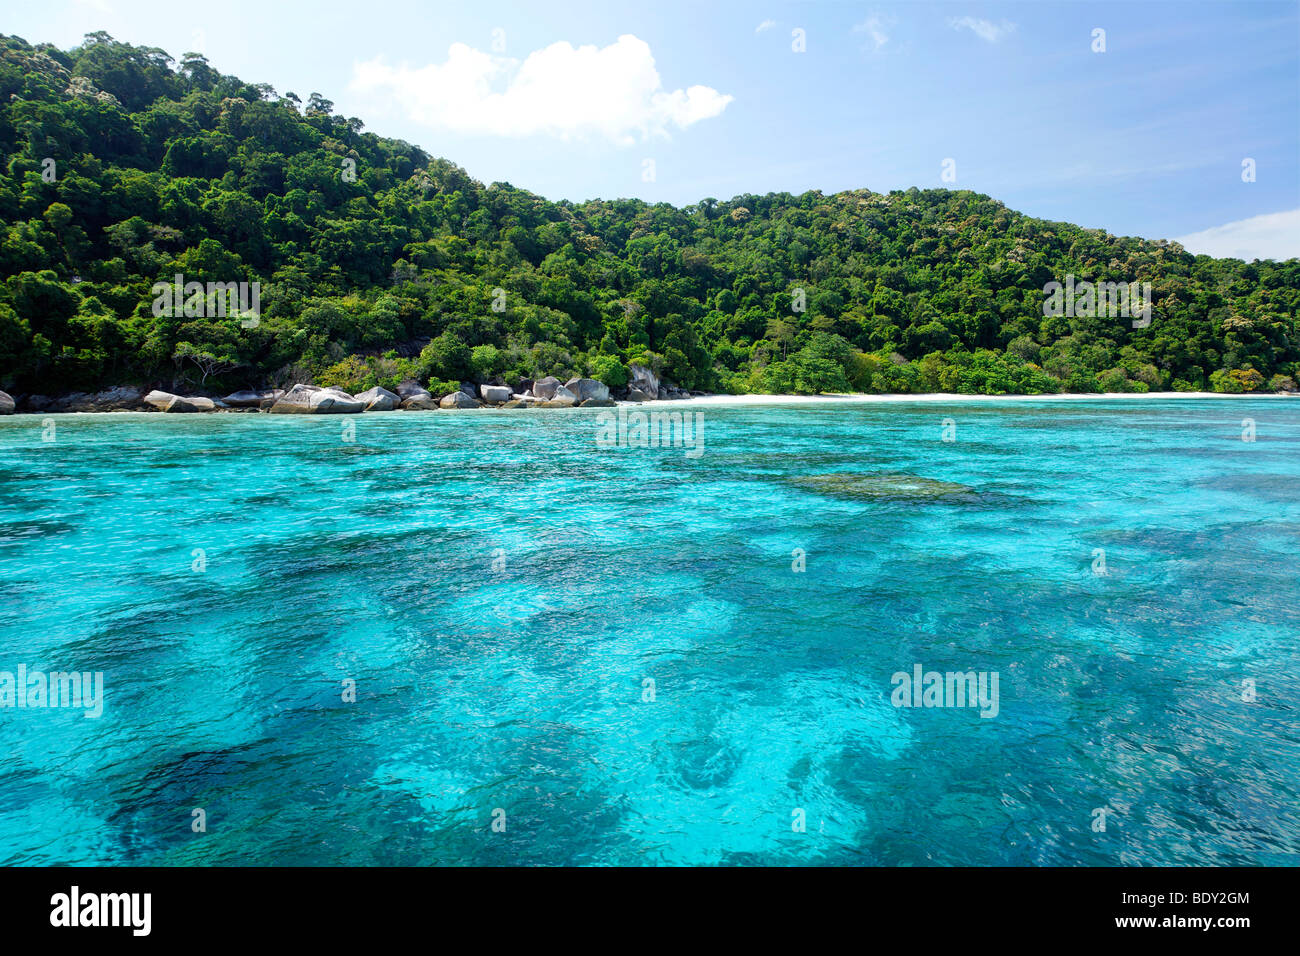 Blue lagoon with coral blocks in front of green island scenery, clear water, Similan Islands, Andaman Sea, Indian - Stock Image